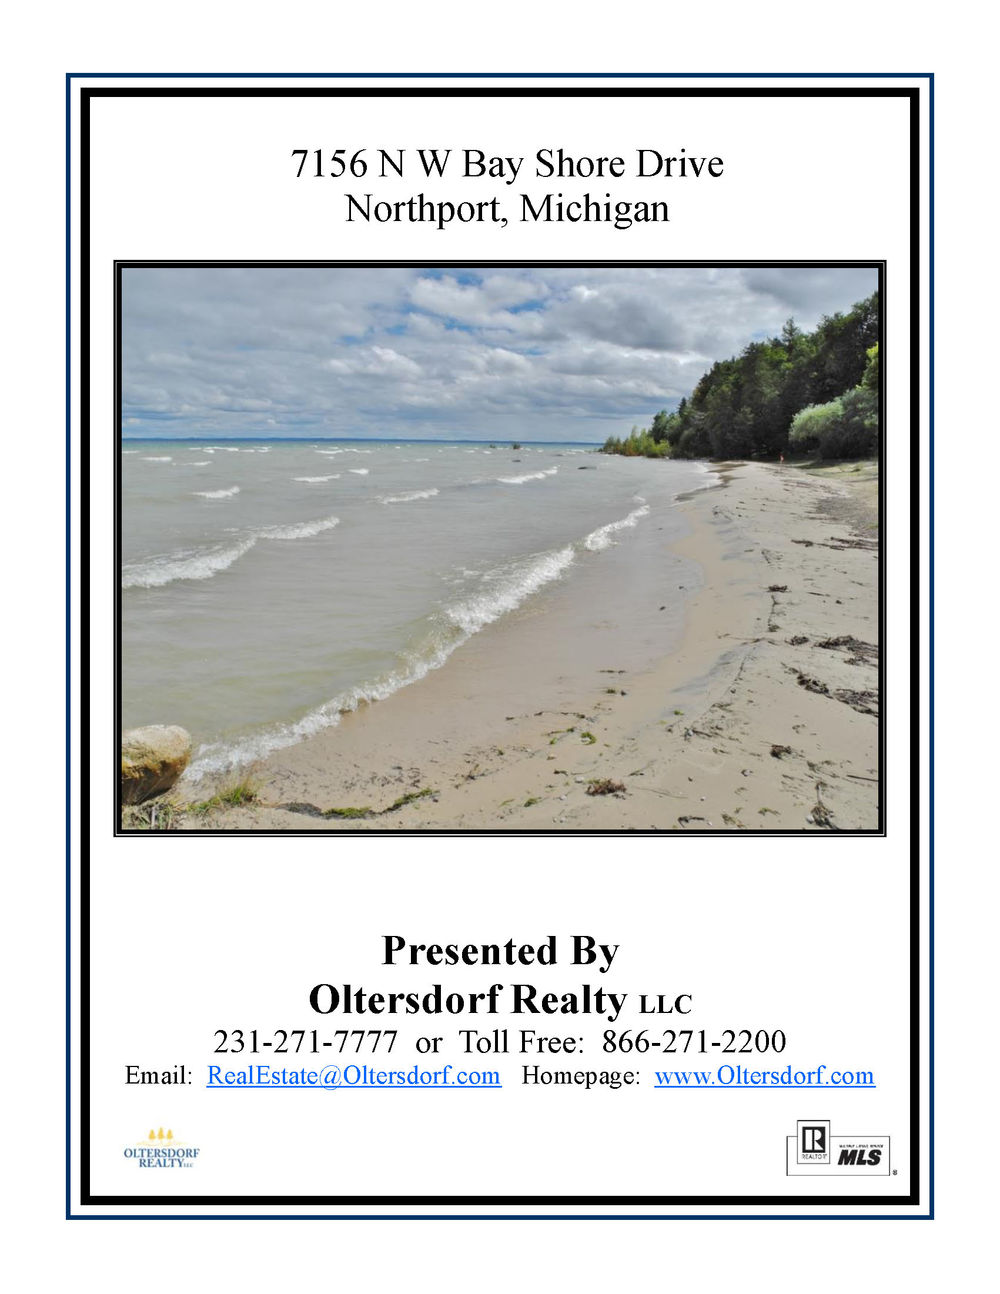 7156 N W Bay Shore Drive, Northport, MI Vacant waterfront lot for sale by Oltersdorf Realty LLC Marketing Packet (1).jpg